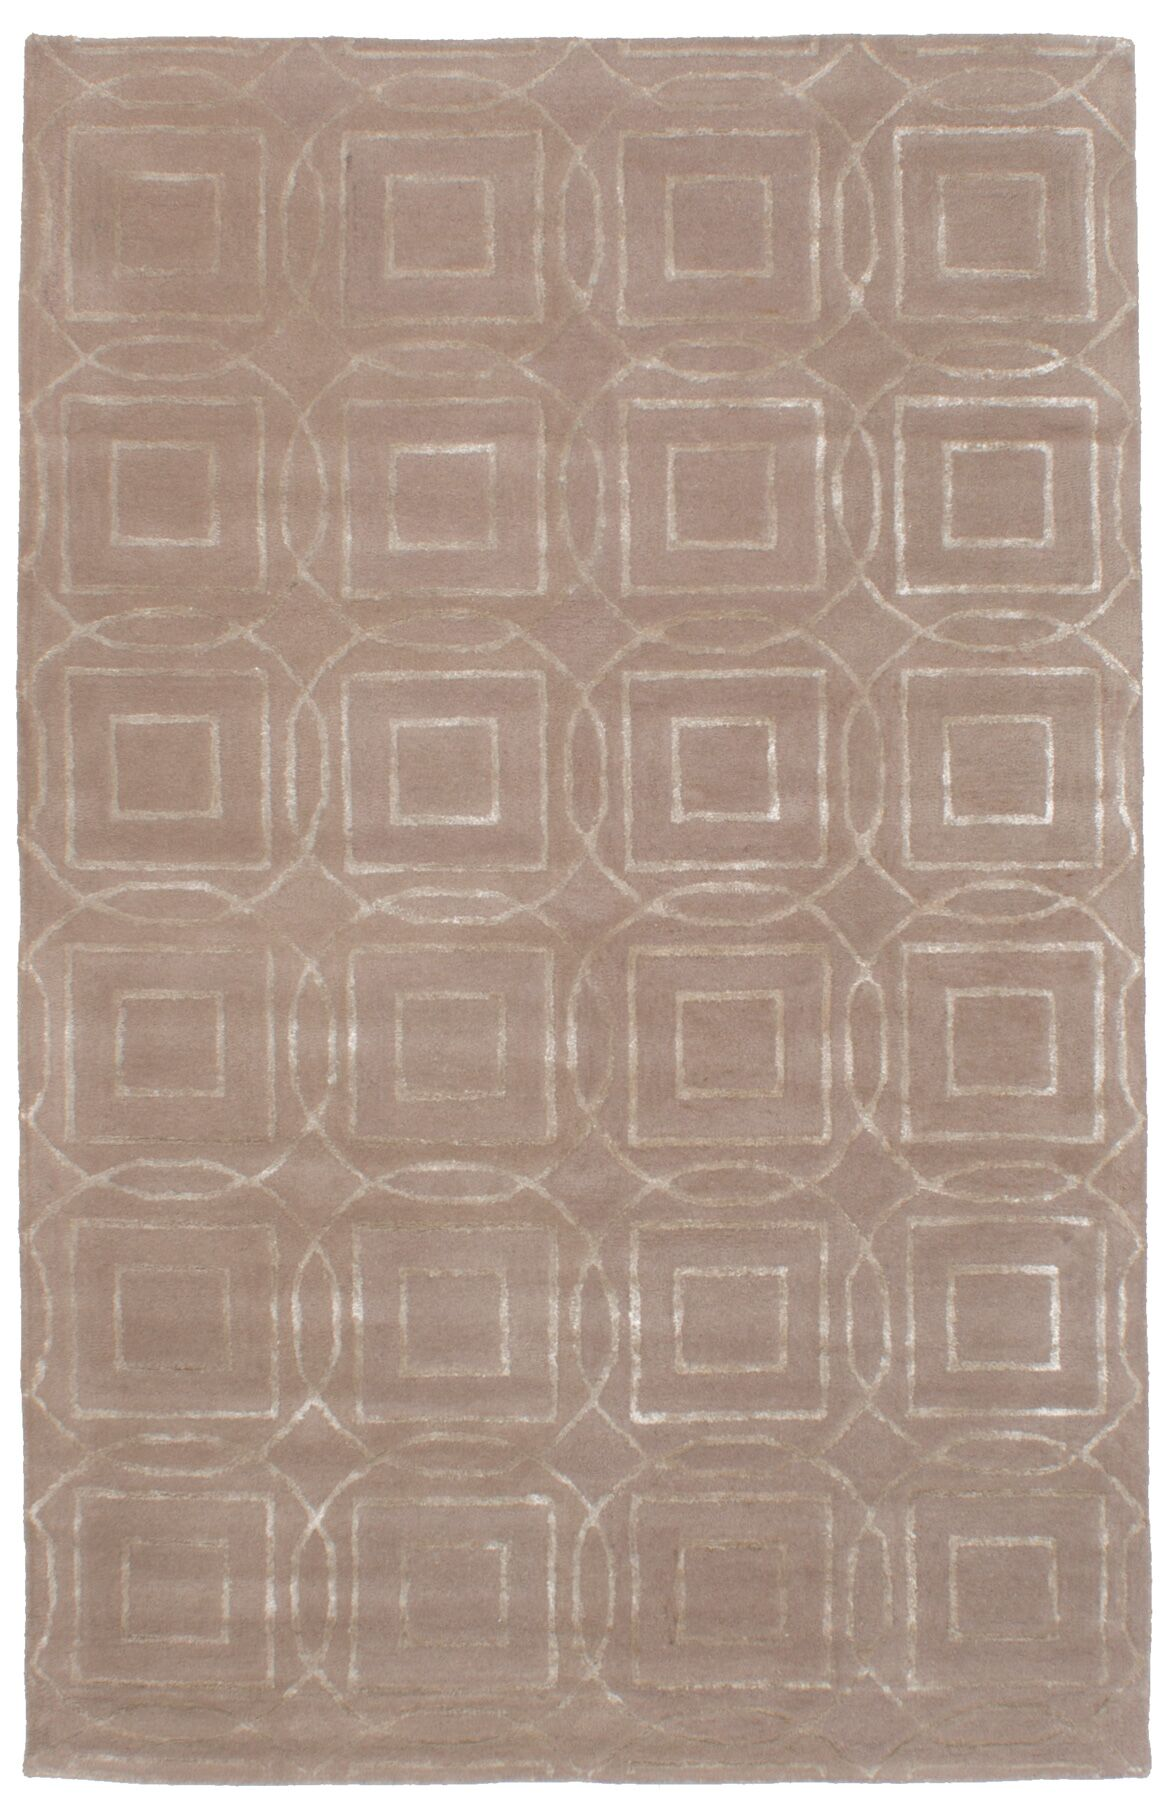 Griffing Hand-Tufted Wool/Silk Tan Area Rug